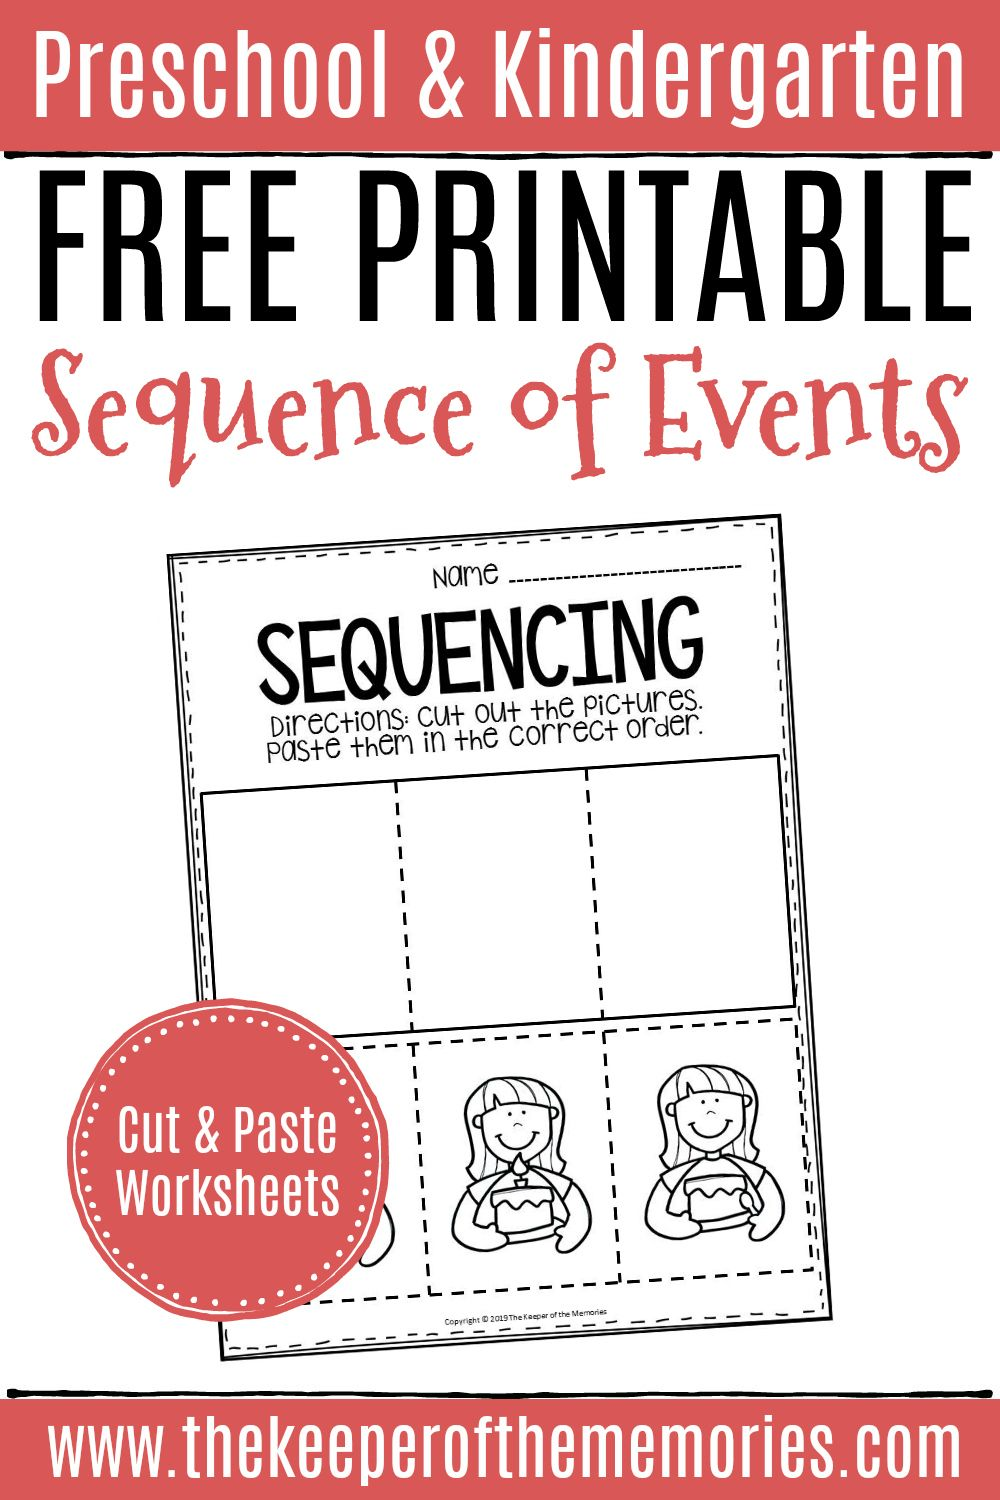 Free Printable Sequence Of Events Worksheets Kindergarten Sequencing Worksheets Sequencing Worksheets Story Sequencing Worksheets [ 1500 x 1000 Pixel ]